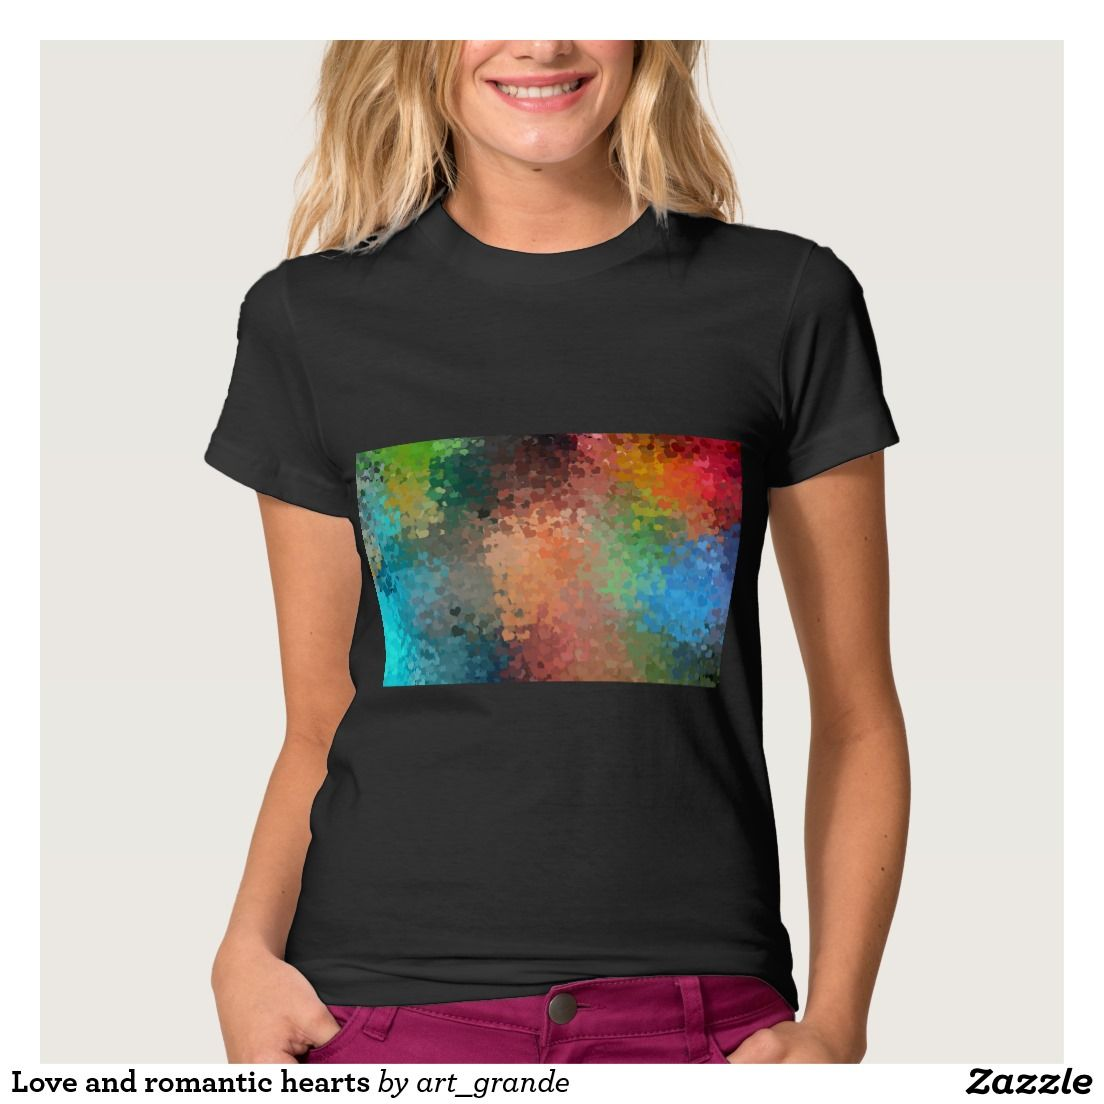 Love and romantic hearts t-shirt